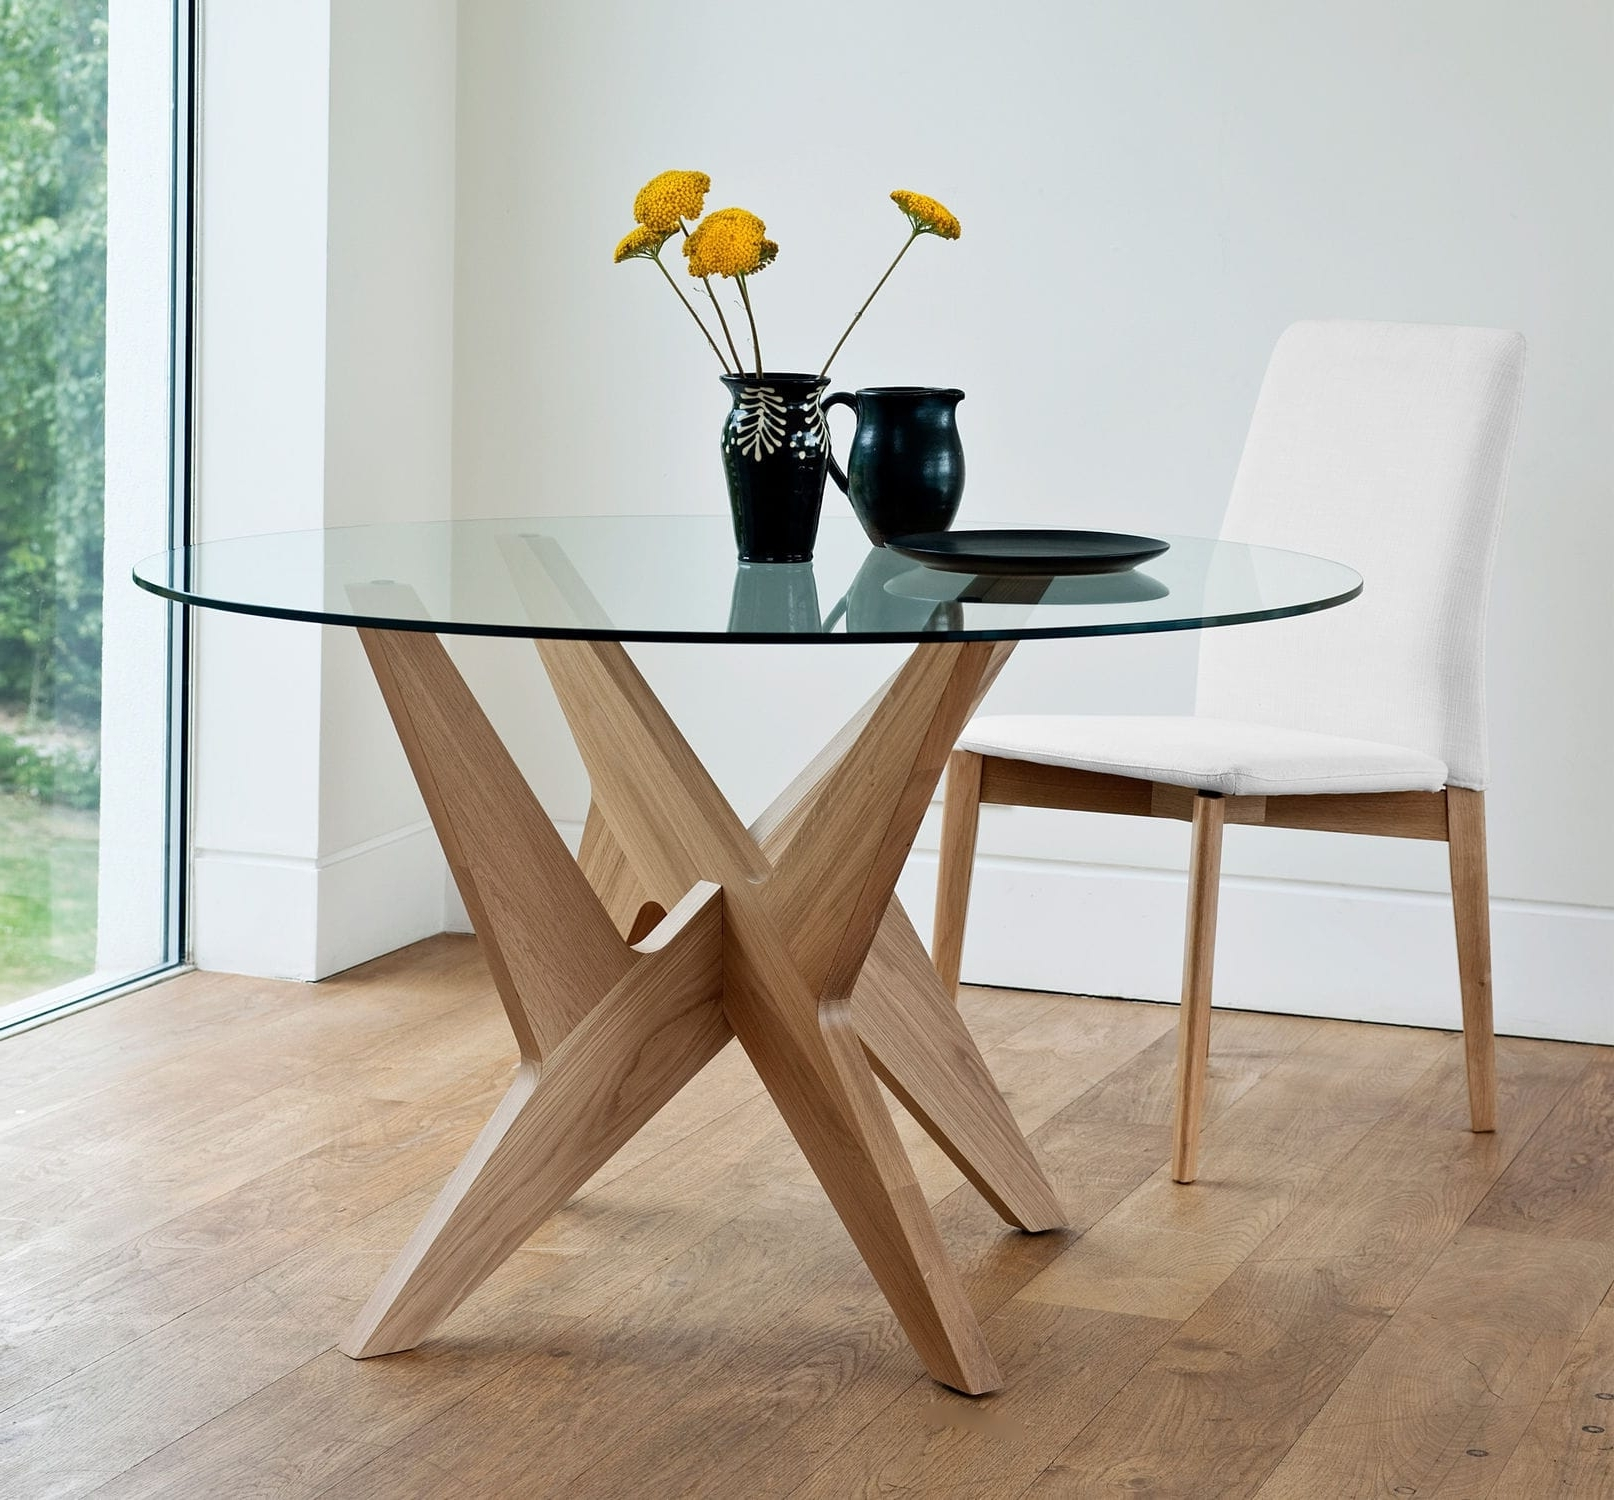 Trendy Contemporary Dining Table / Glass / Oak / Round – Cross Side Inside Round Glass And Oak Dining Tables (View 23 of 25)